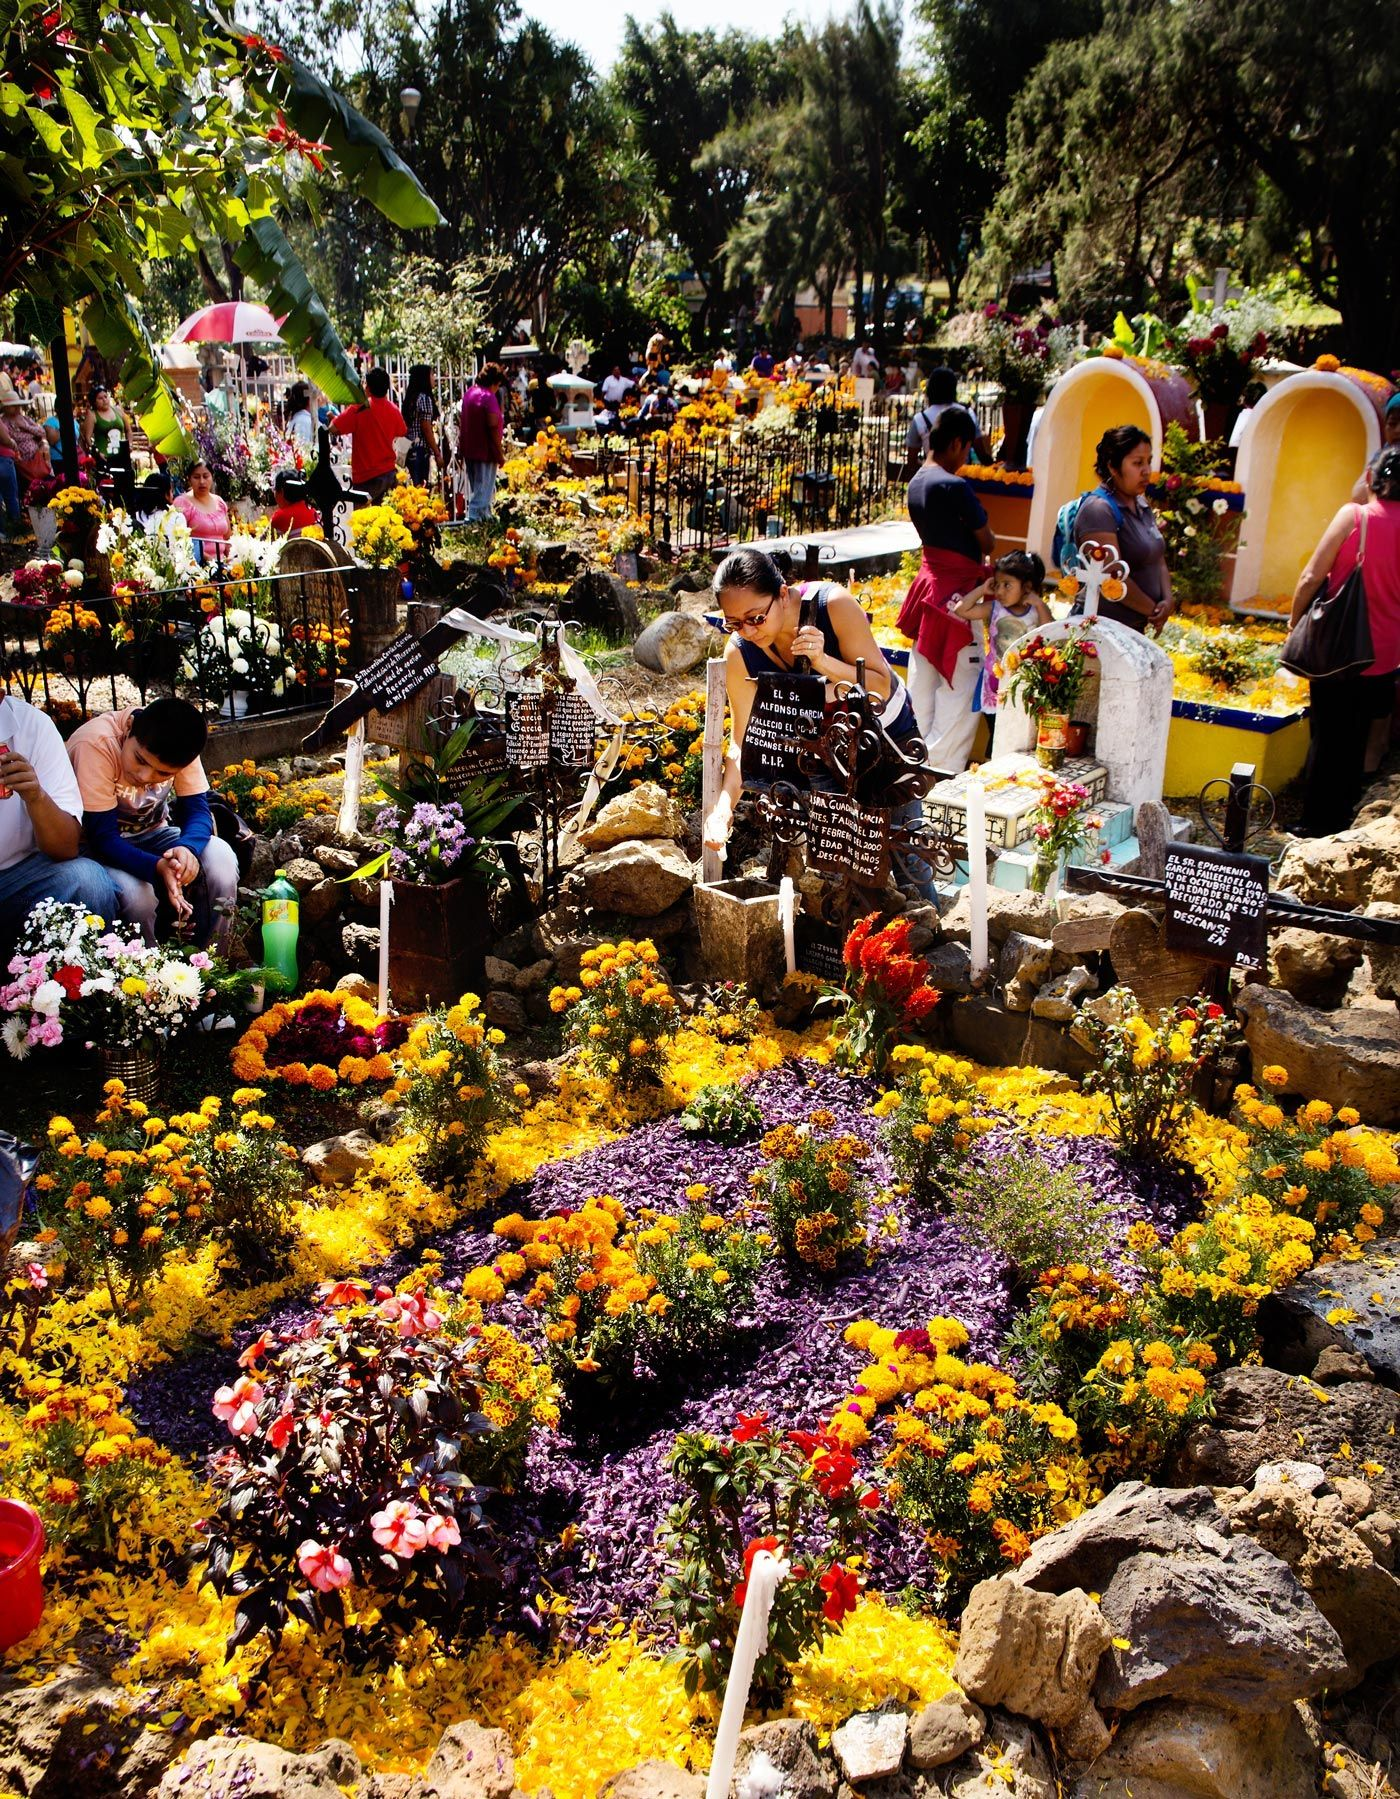 Marigolds & the Mexican Day of the Dead | Art, Music, Movies, Books ...